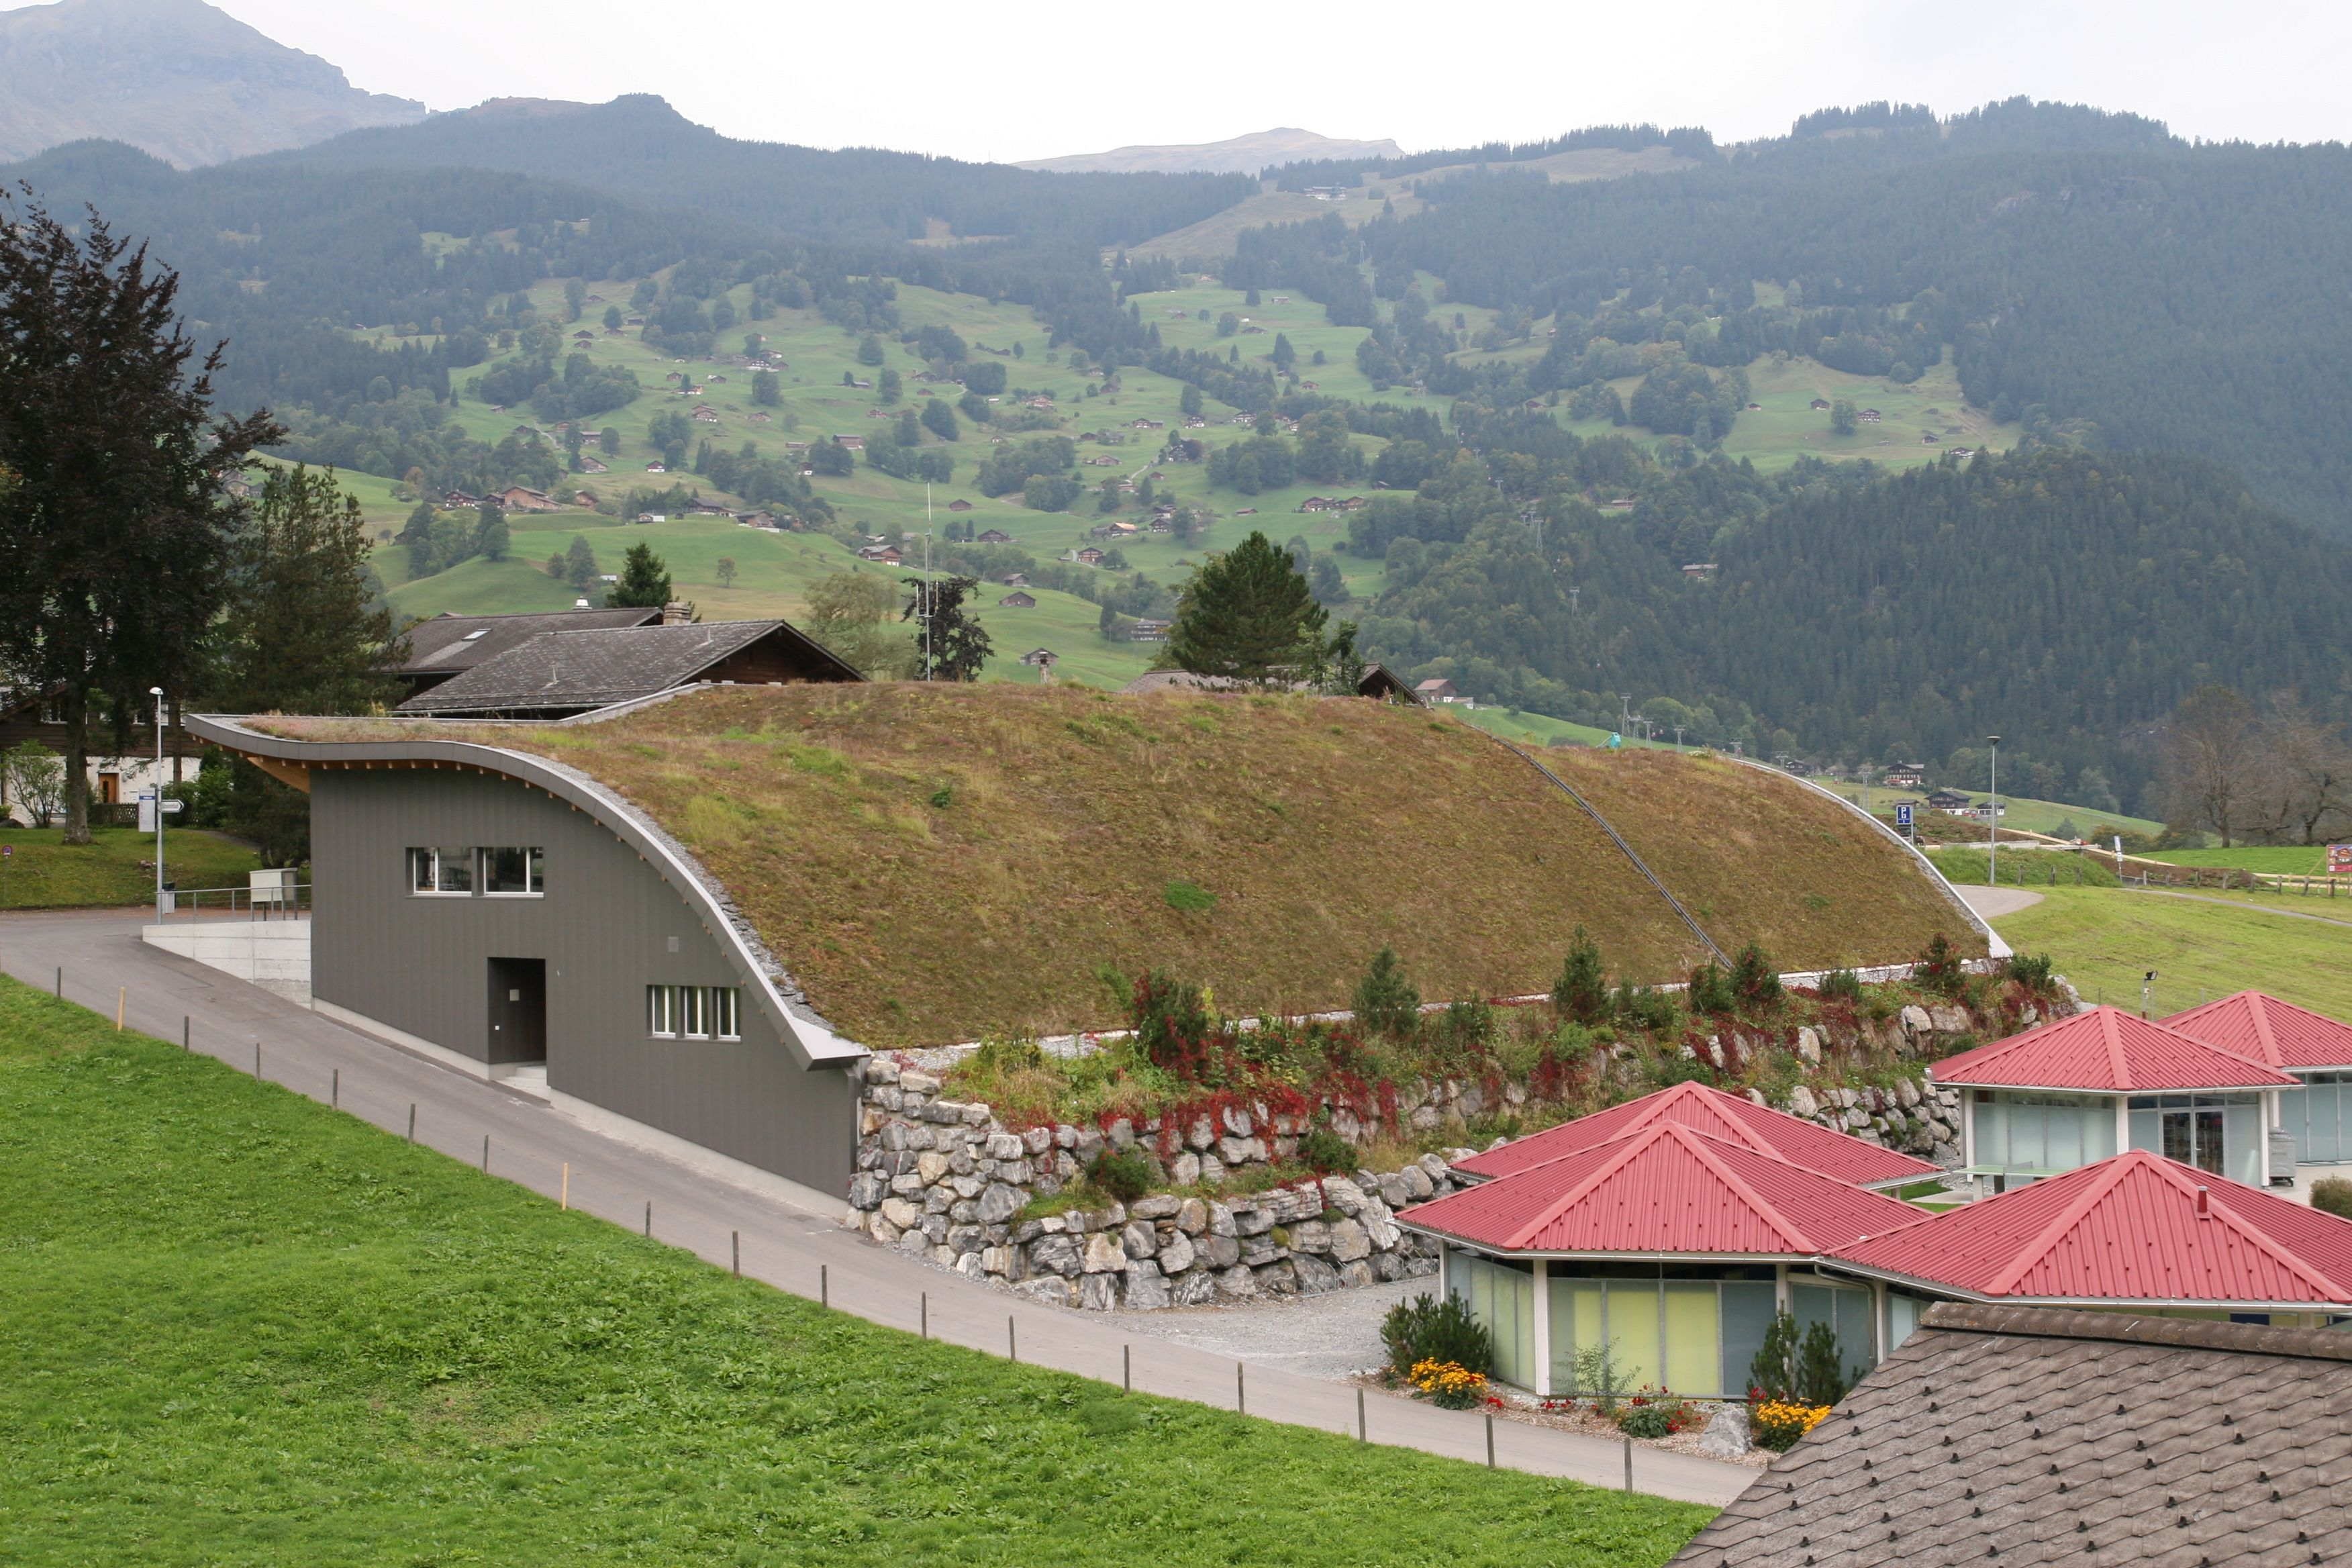 Grindelwald Green Roof Rooftop Garden Living Roof Zinco Green Roof System